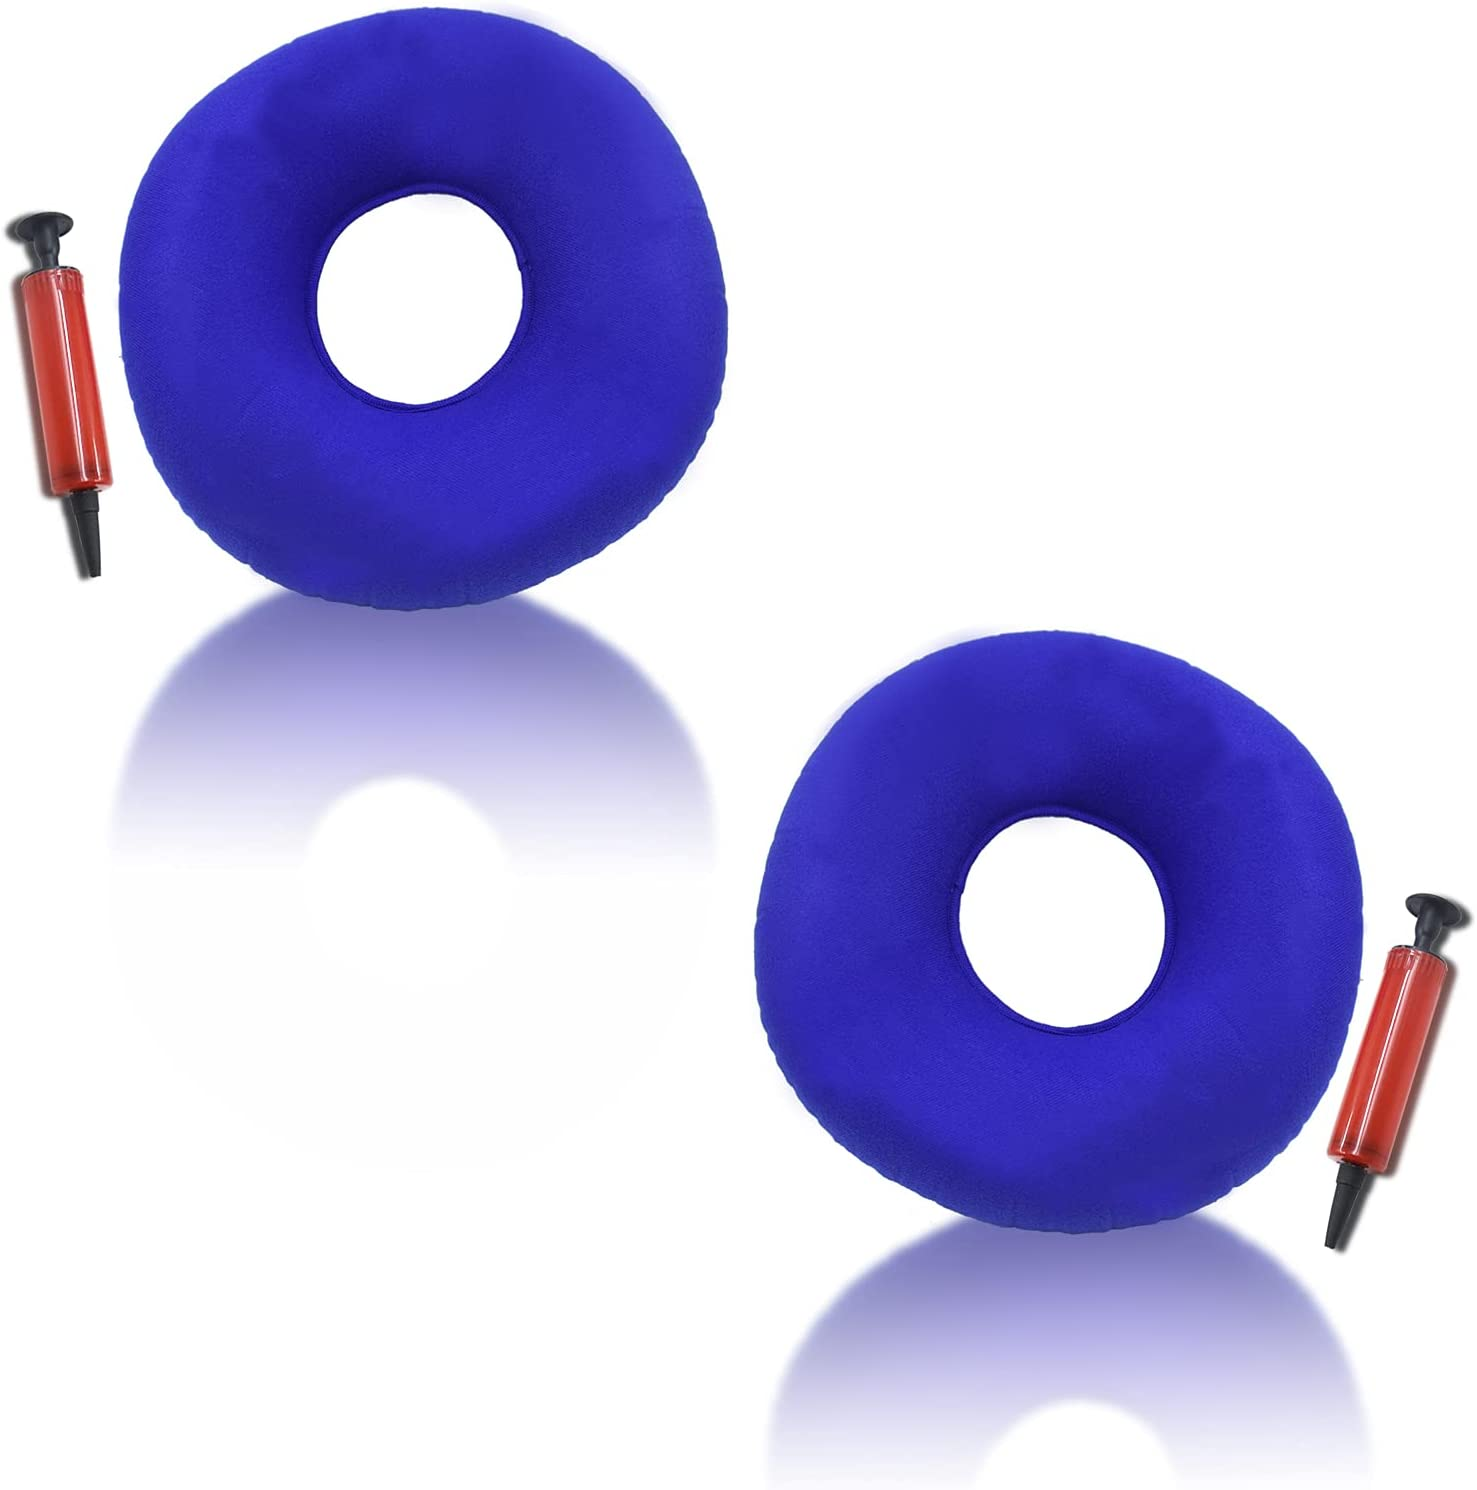 2 Pack Inflatable Ring Cushion with Pillo Seat Popular standard Pump Hemorrhoid A Super-cheap